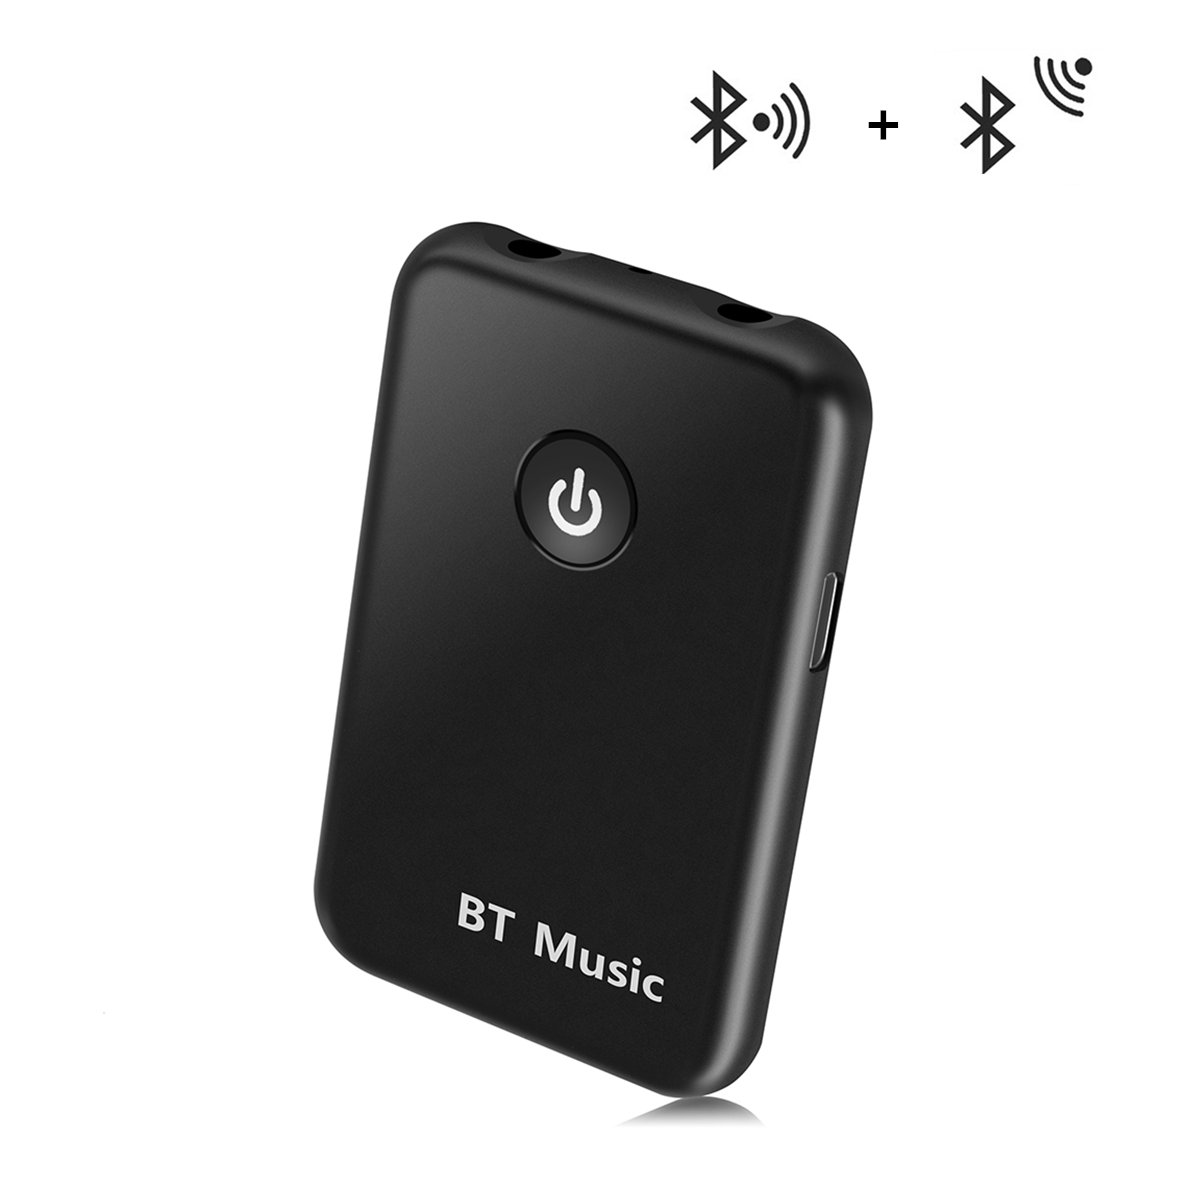 Bluetooth Transmitter/Receiver,2-in-1 Wireless 3.5mm Audio Adapter for TV/Home Sound System/Car Stereo System,by FIRSTELEC